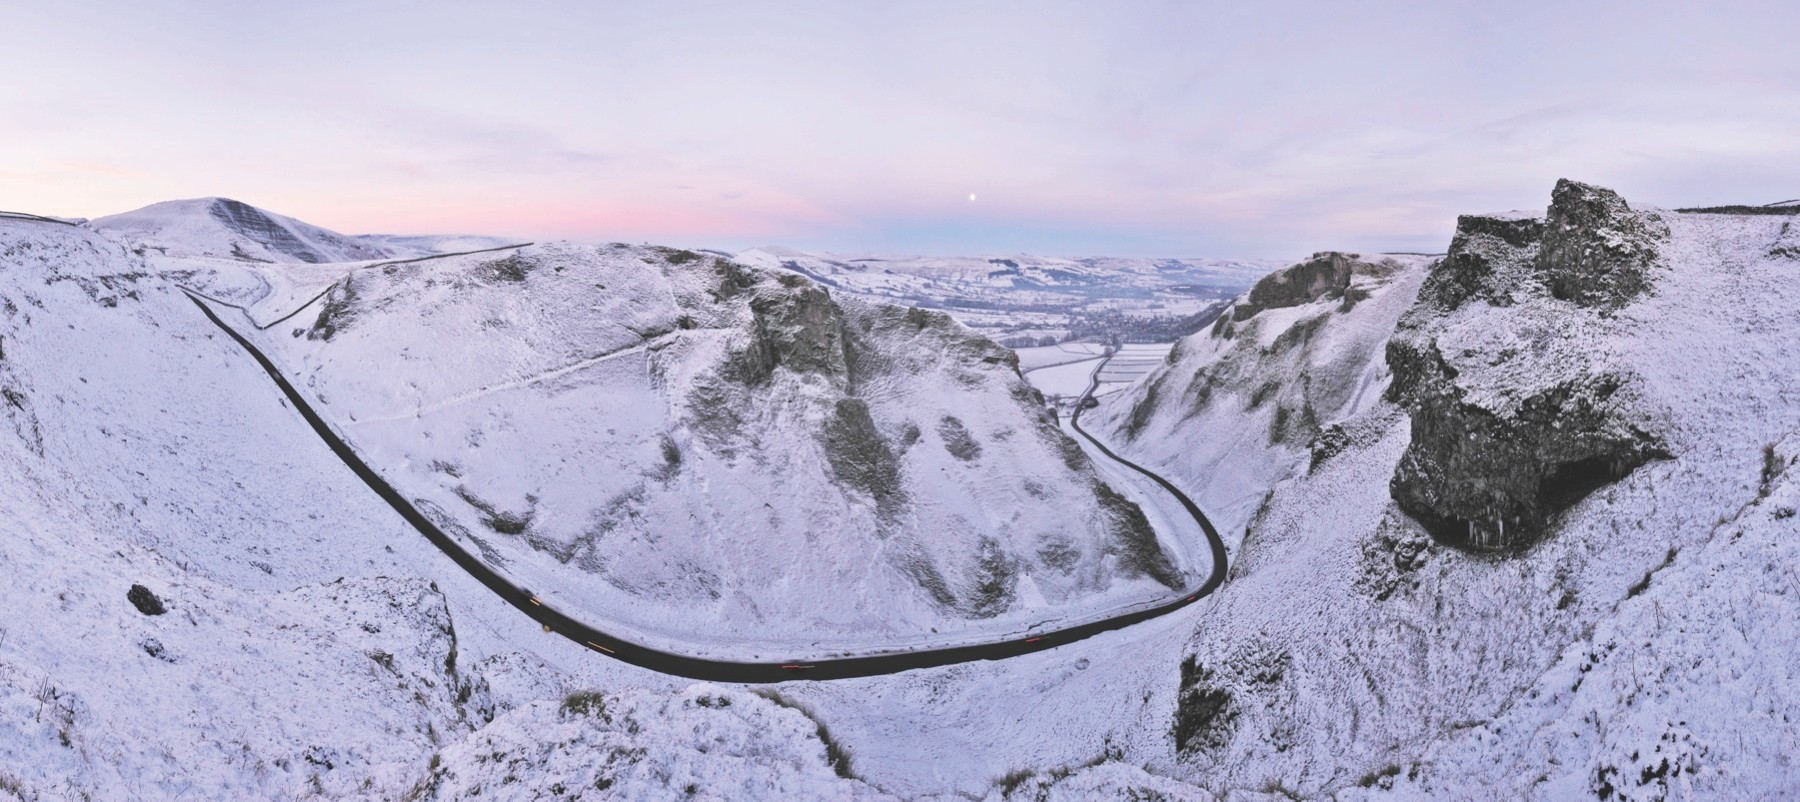 PEAK DISTRICT, UNITED KINGDOM - DECEMBER 20: EXCLUSIVE. Panoramic sunset image made up of six photographs showing Winnats Pass, close to Castleton village in the heart of The Peak District on December 20, 2010 in the Peak District, England. (Photo by Robbie Shone / Barcroft Media / Getty Images)